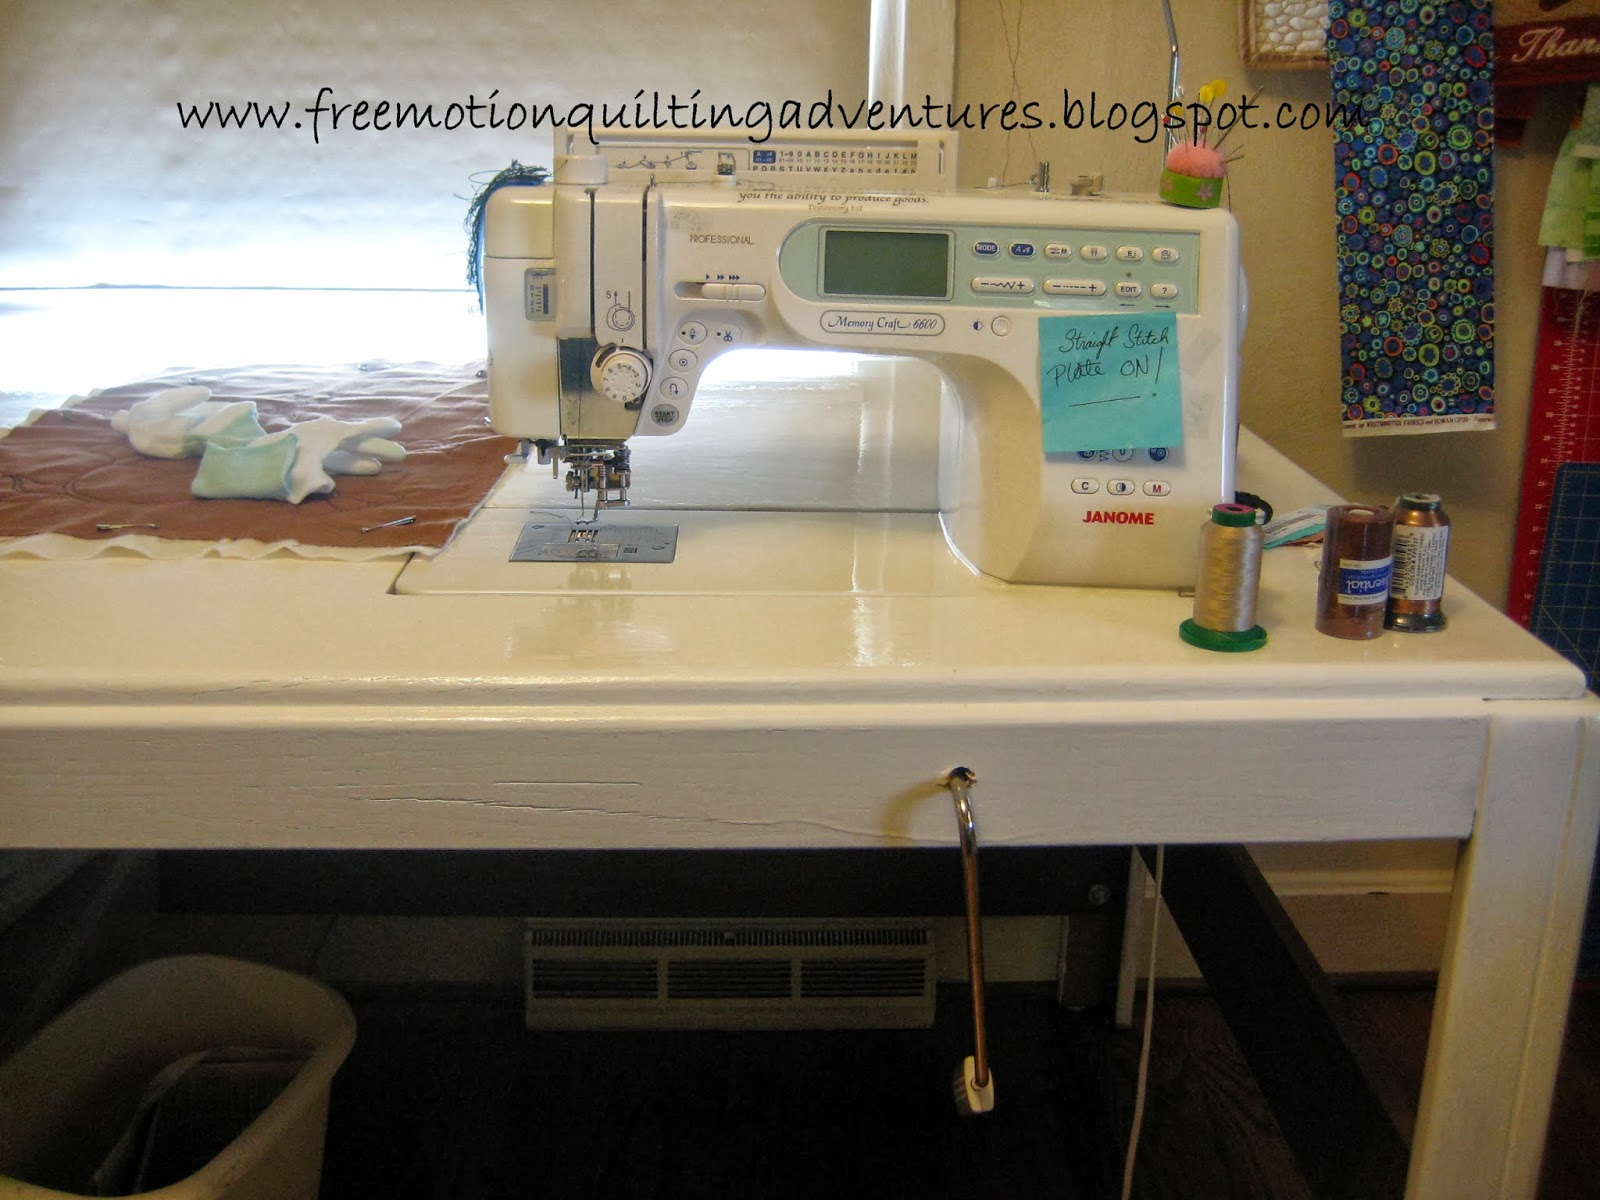 Amys free motion quilting adventures how to make a sewing machine free motion quilting table diy watchthetrailerfo